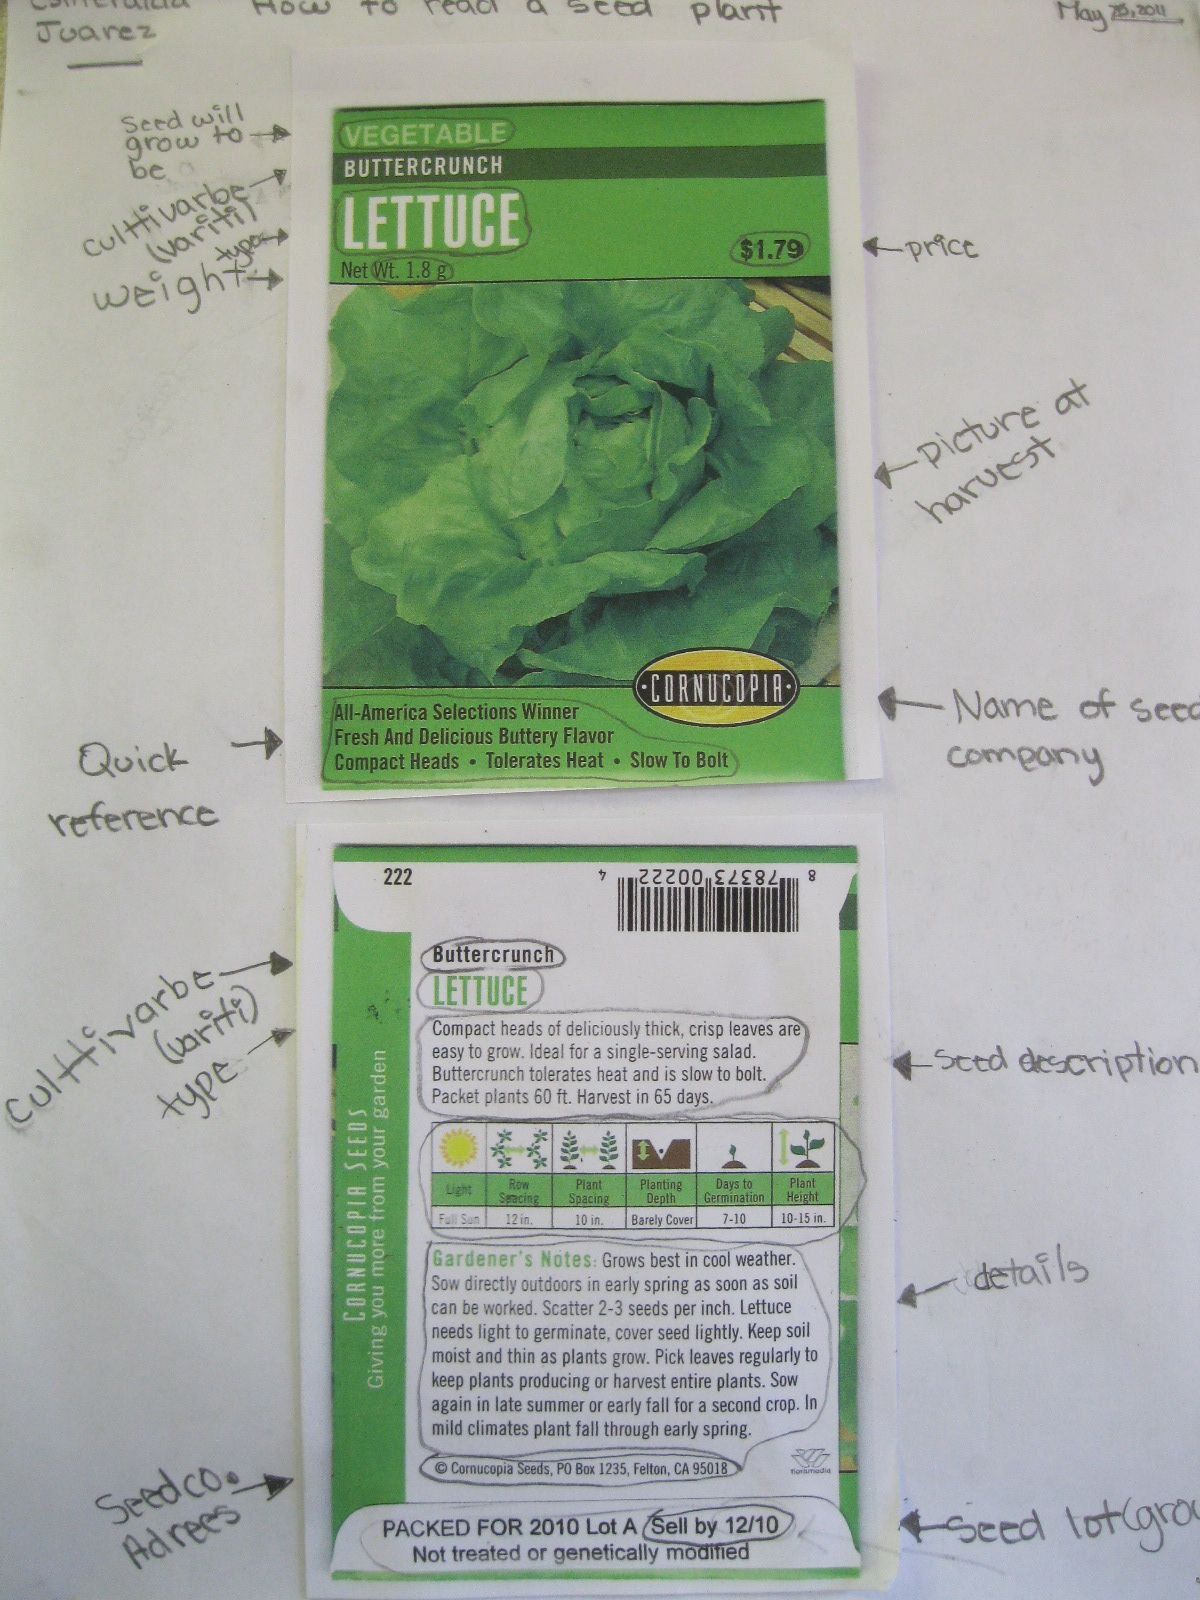 Teaching How To Read A Seed Packet